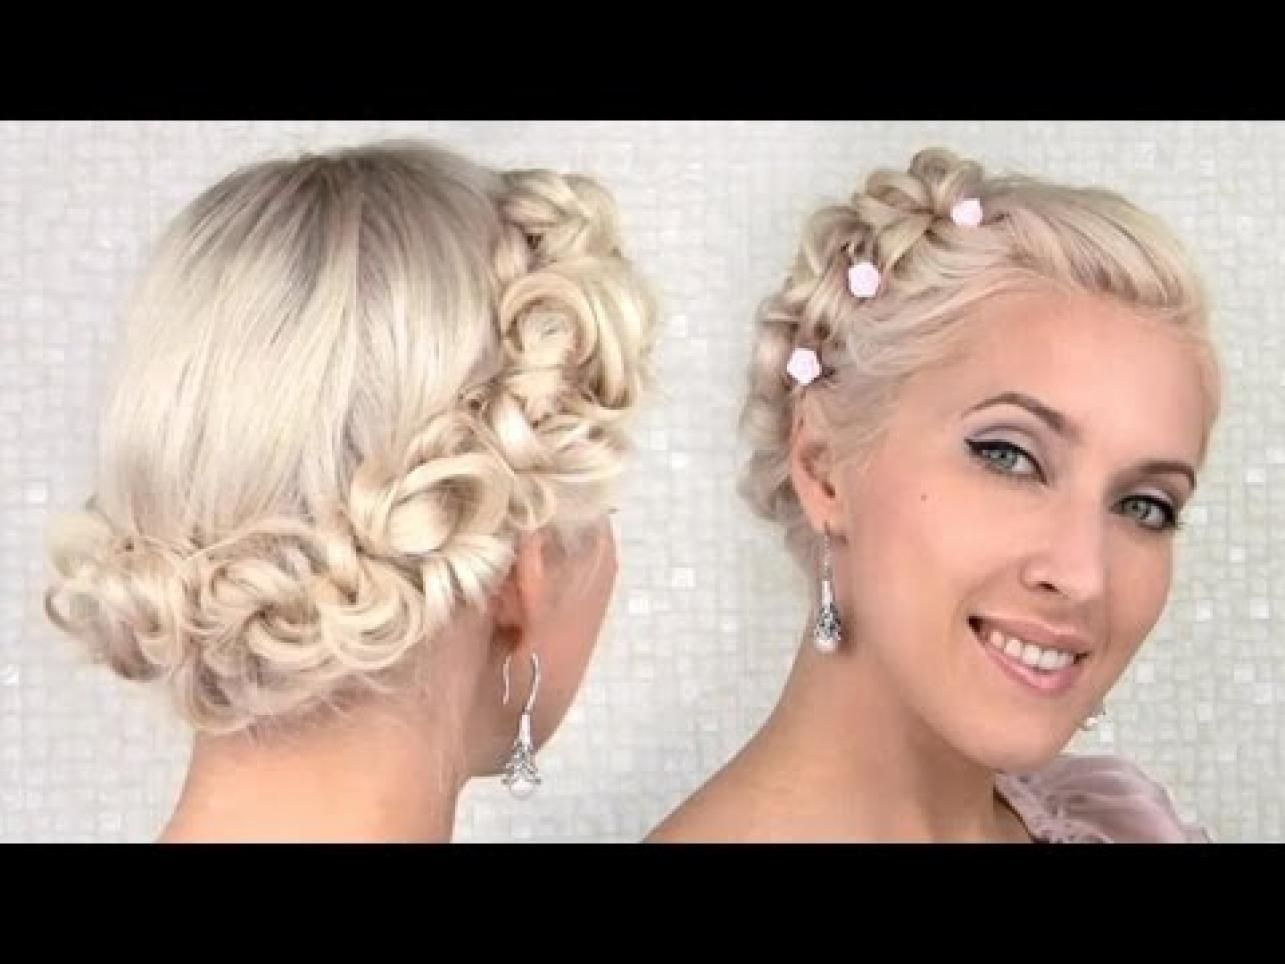 Bridal hairstyles for short hair simple hairstyle ideas for easy wedding updo tutorial prom hairstyle for short medium long hair 2013 baditri Gallery